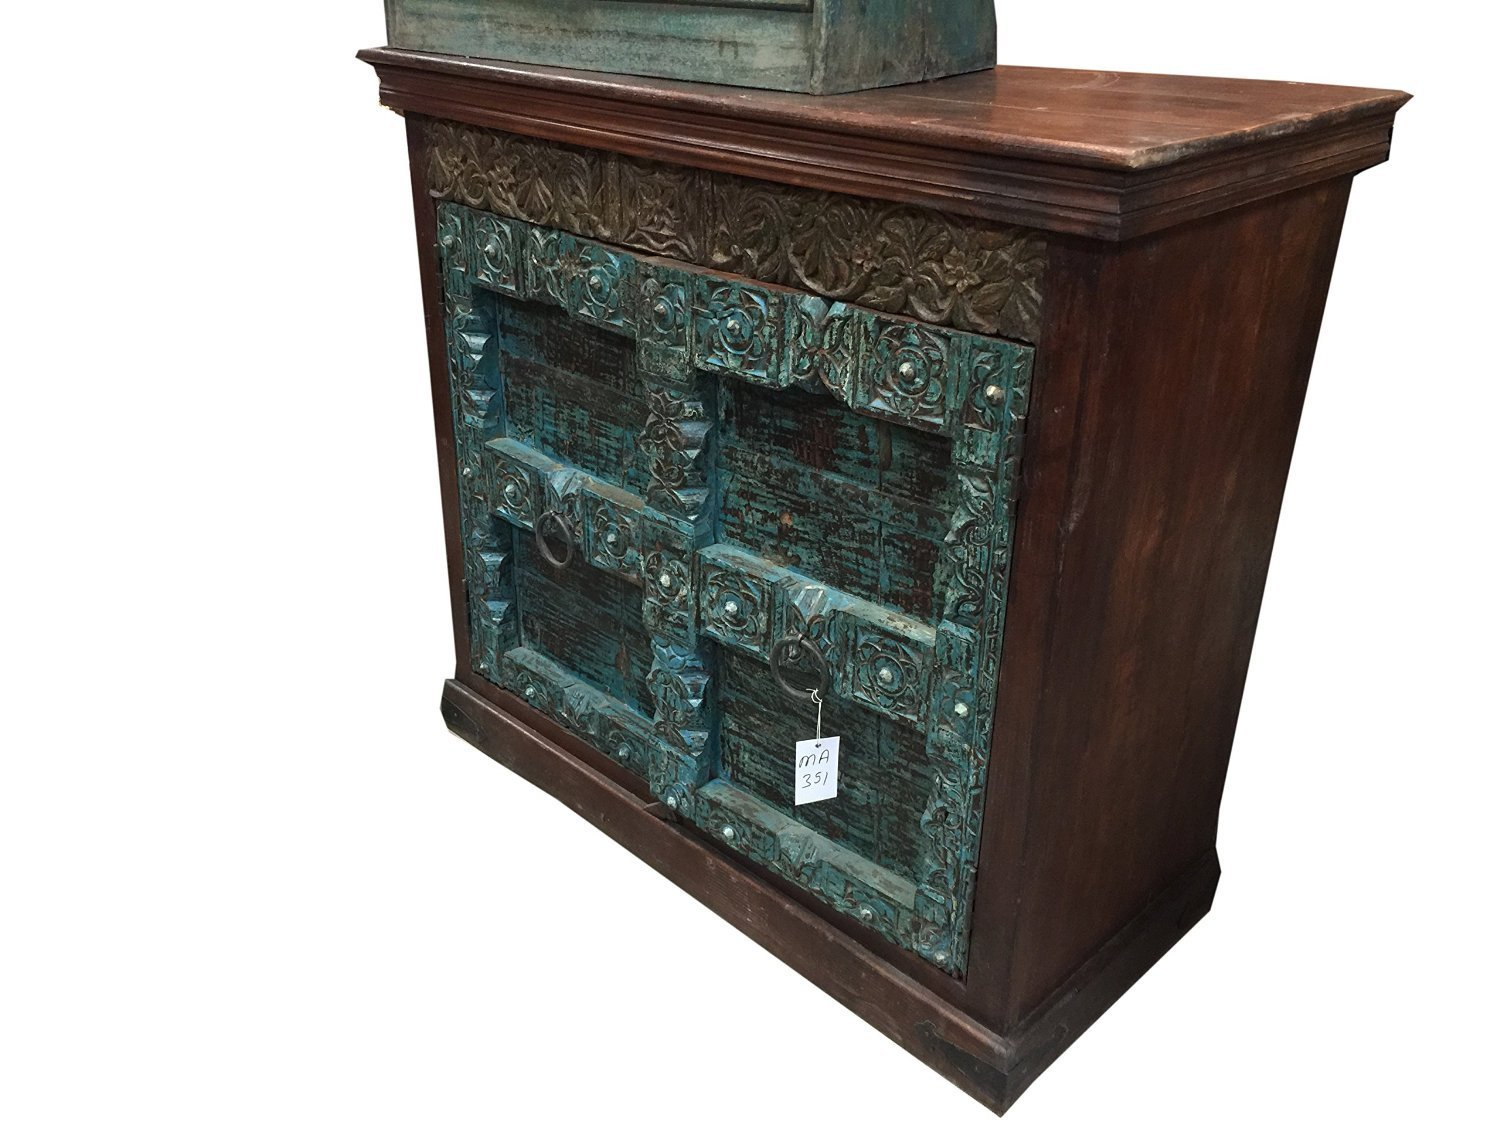 Vintage Gothic Doors Sideboard Hand Carved Wooden Console Cabinet Indian Chest